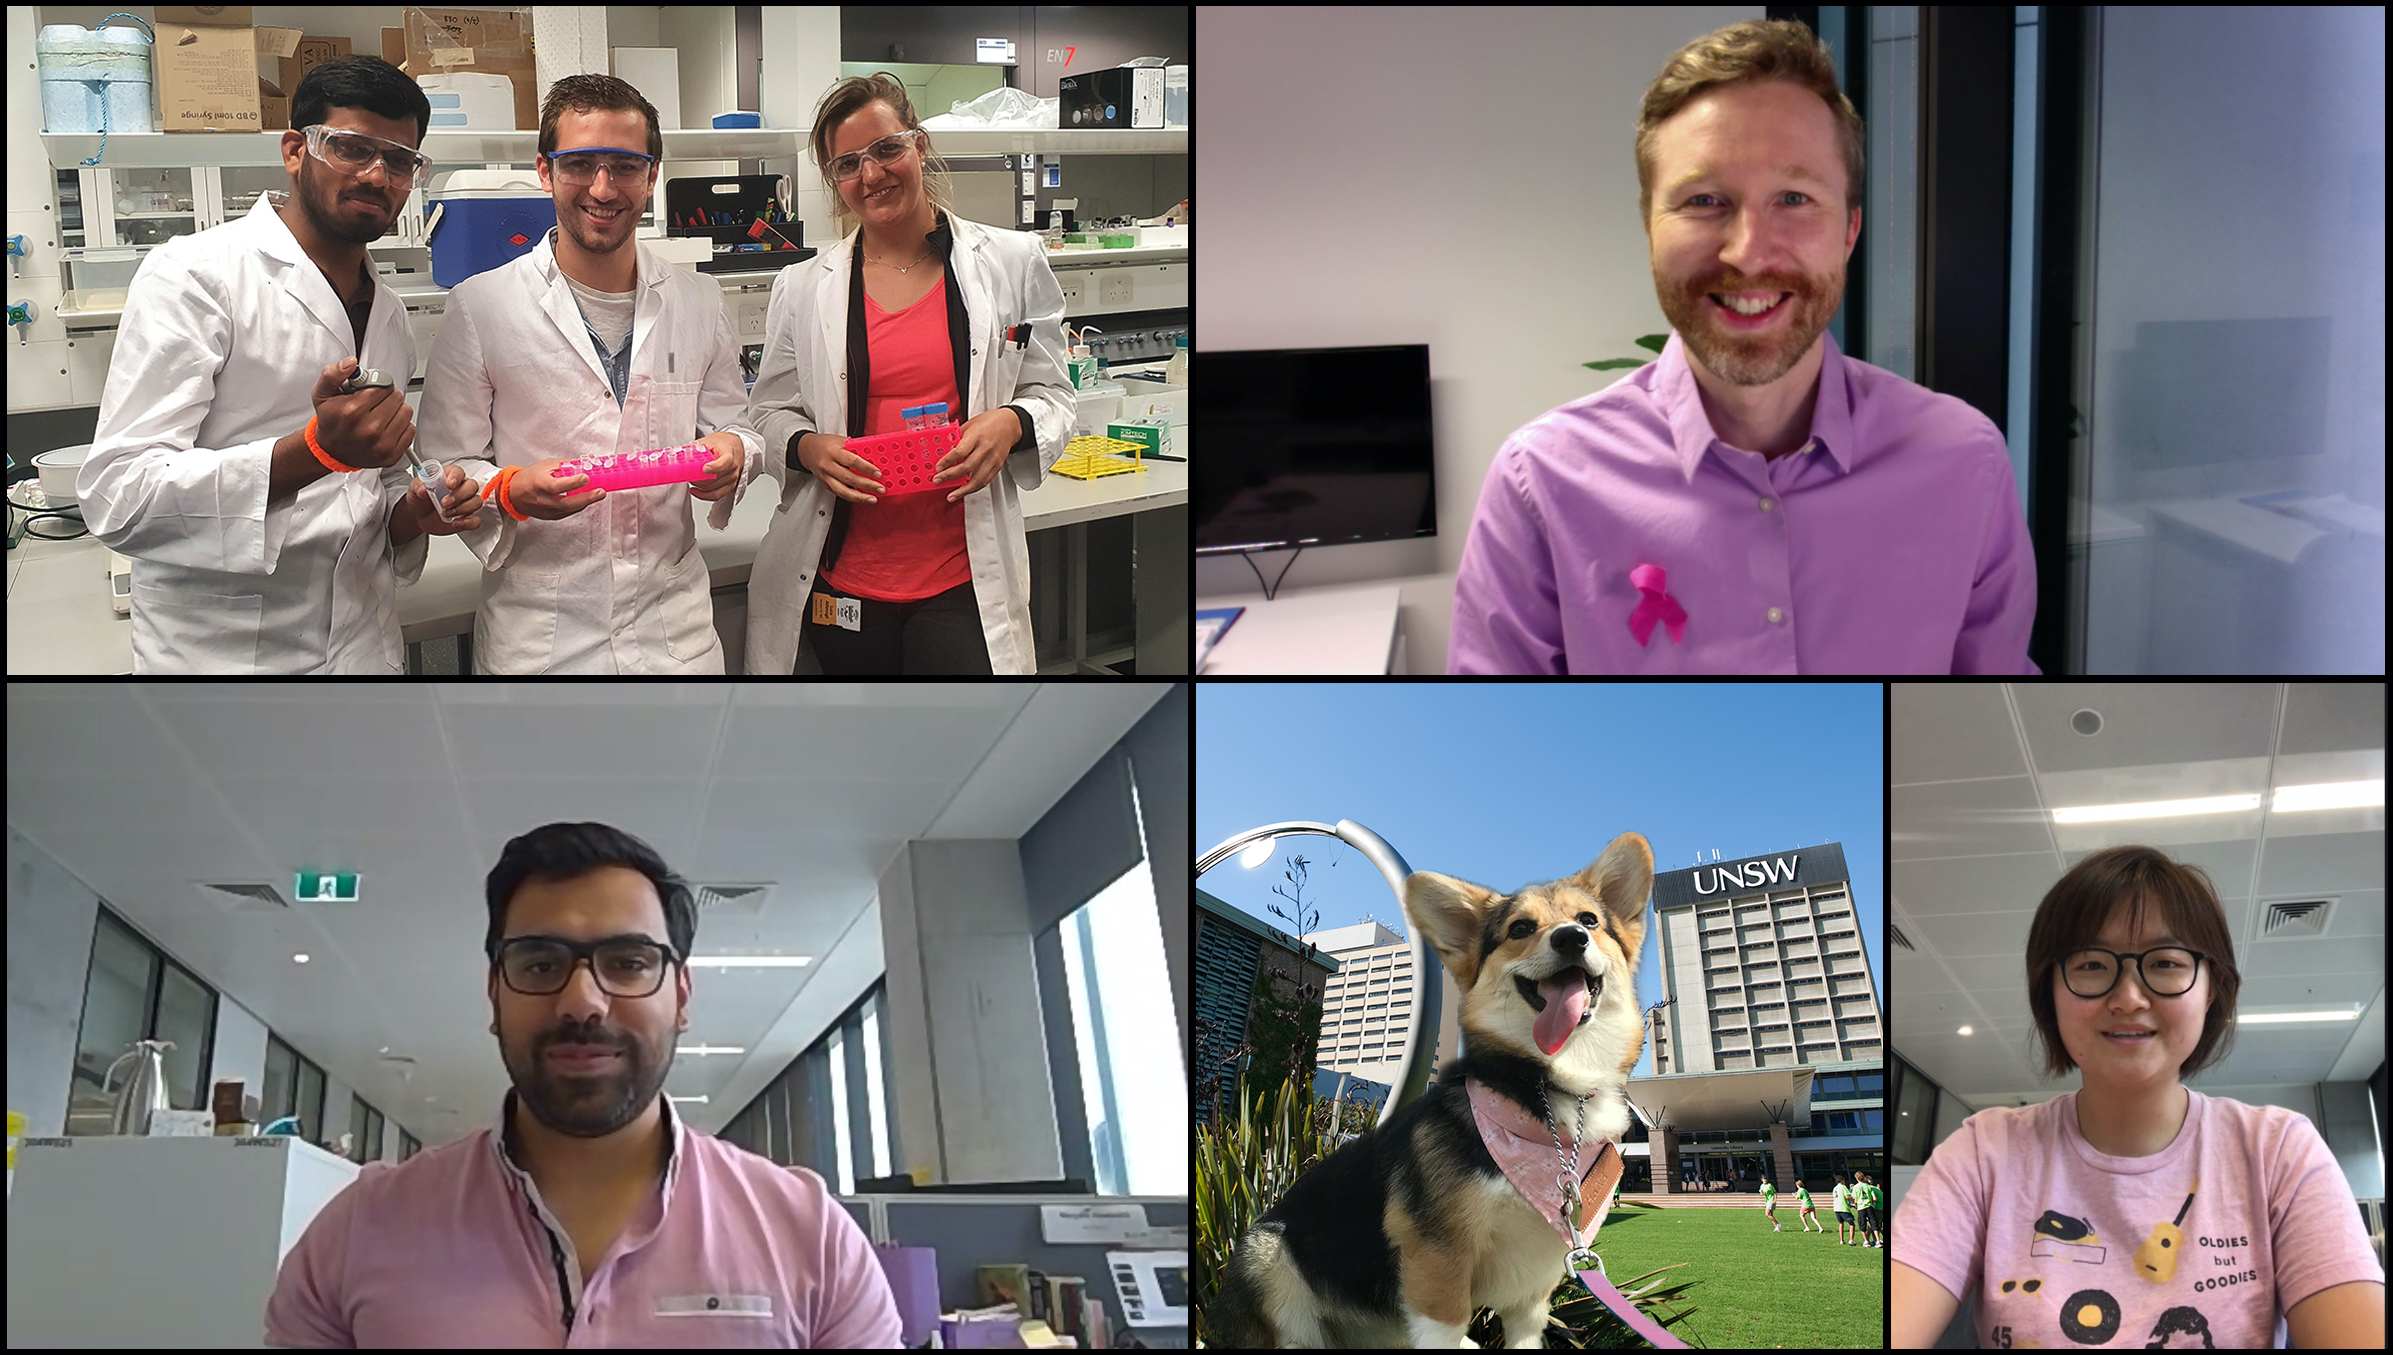 The Wichlab wraps up the #BreastCancerAwarenessMonth with a group picture - The yearly campaign might be over, but sharing the awareness and the importance of early screening has to continue! #BreastCancer #Pink #Pinktober #Wichlab @UNSW @UNSWEngineering @UNSWChemEng